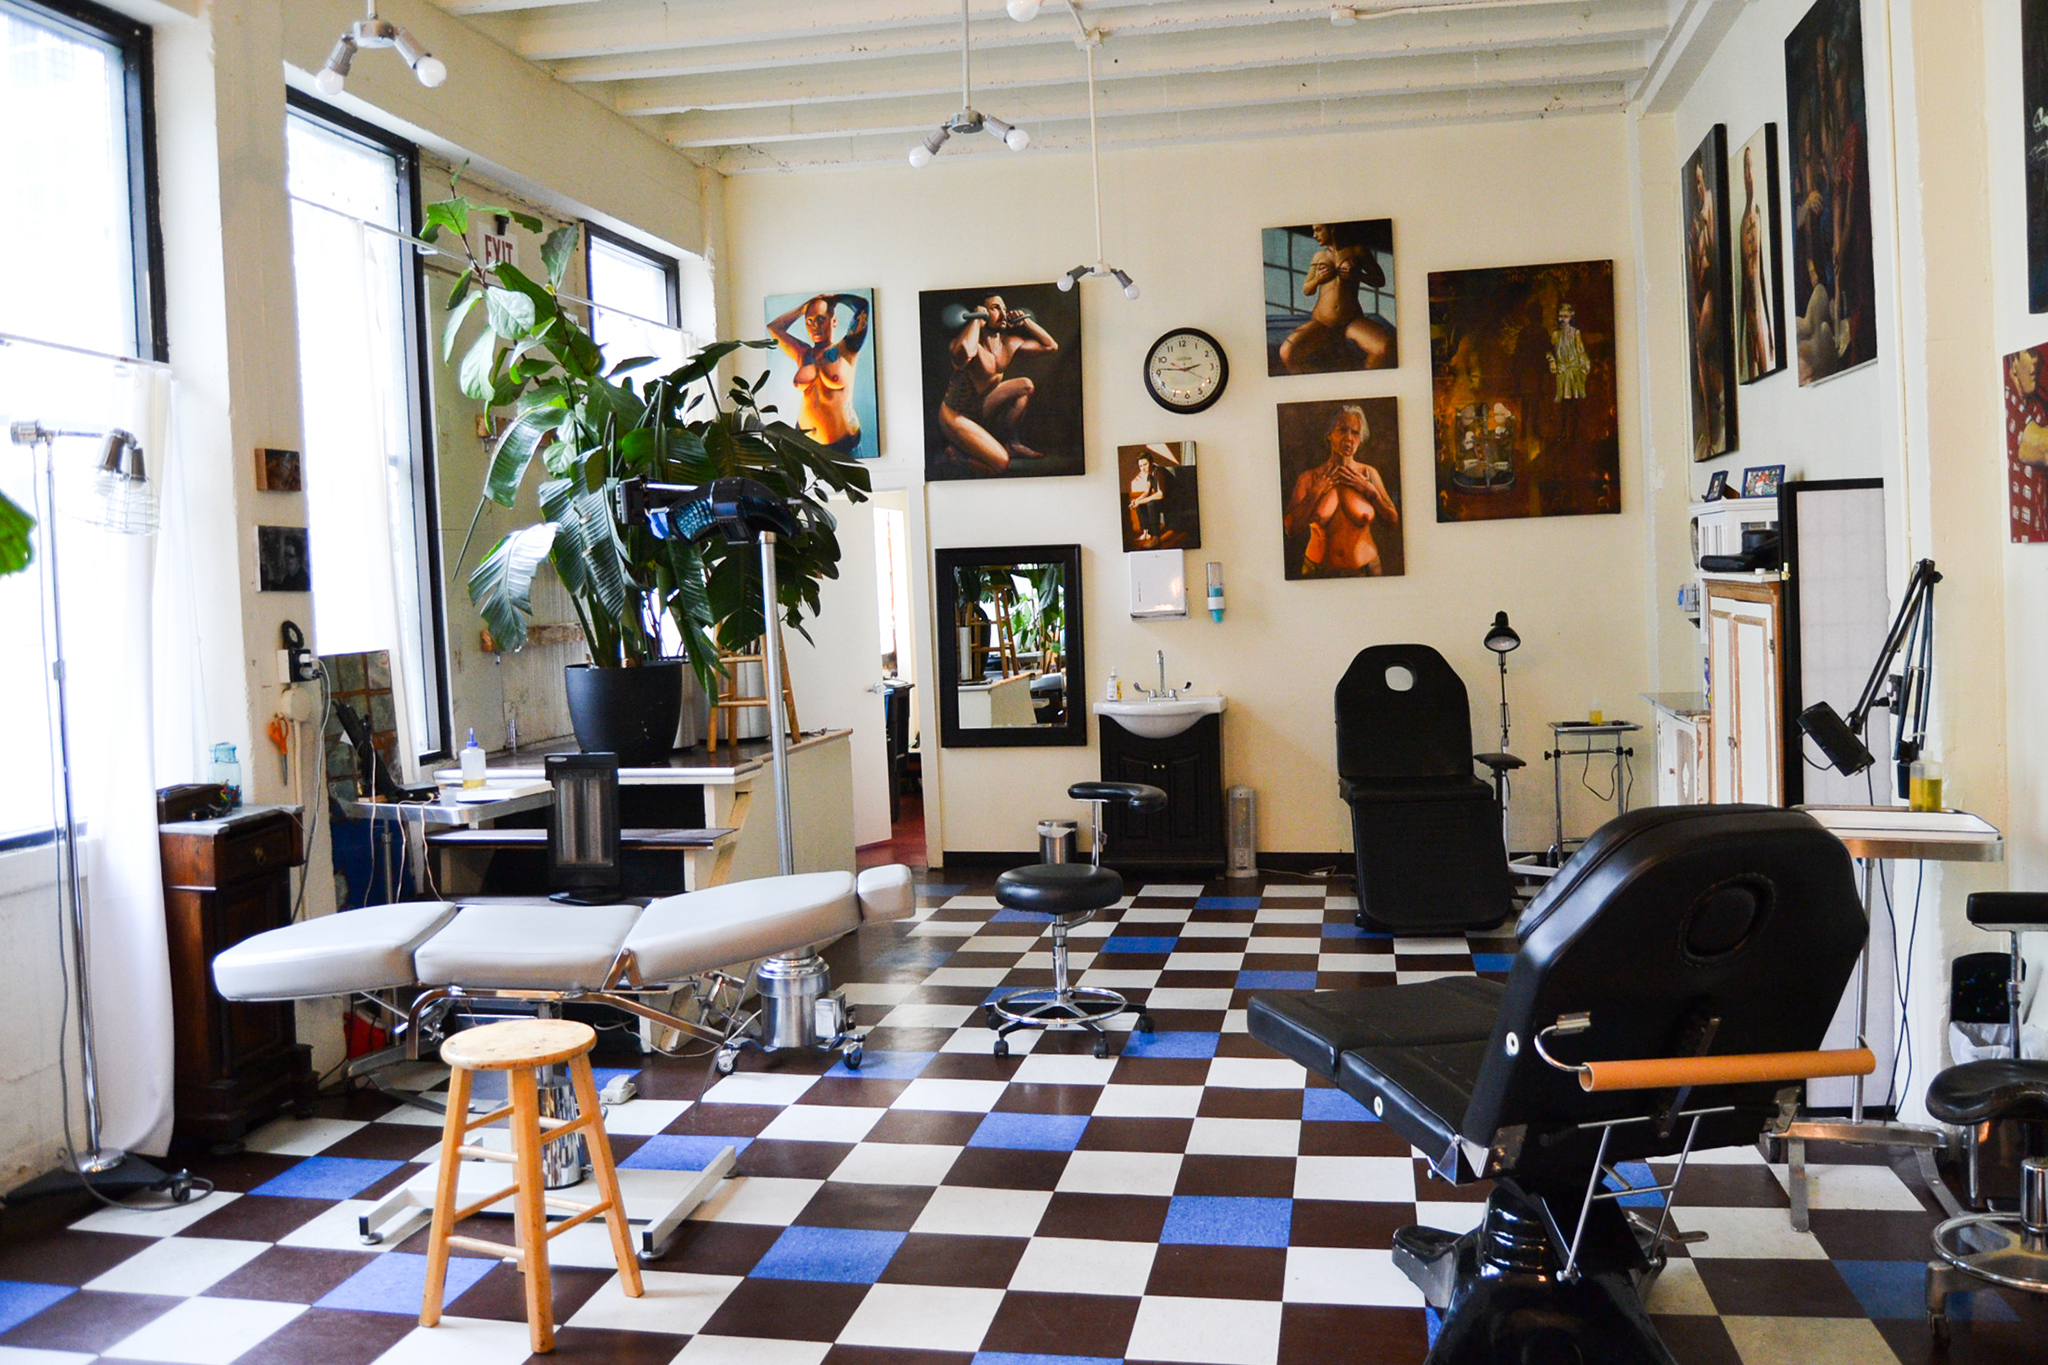 Best tattoo shops in san francisco for tattoo art and for Tattoo shop design